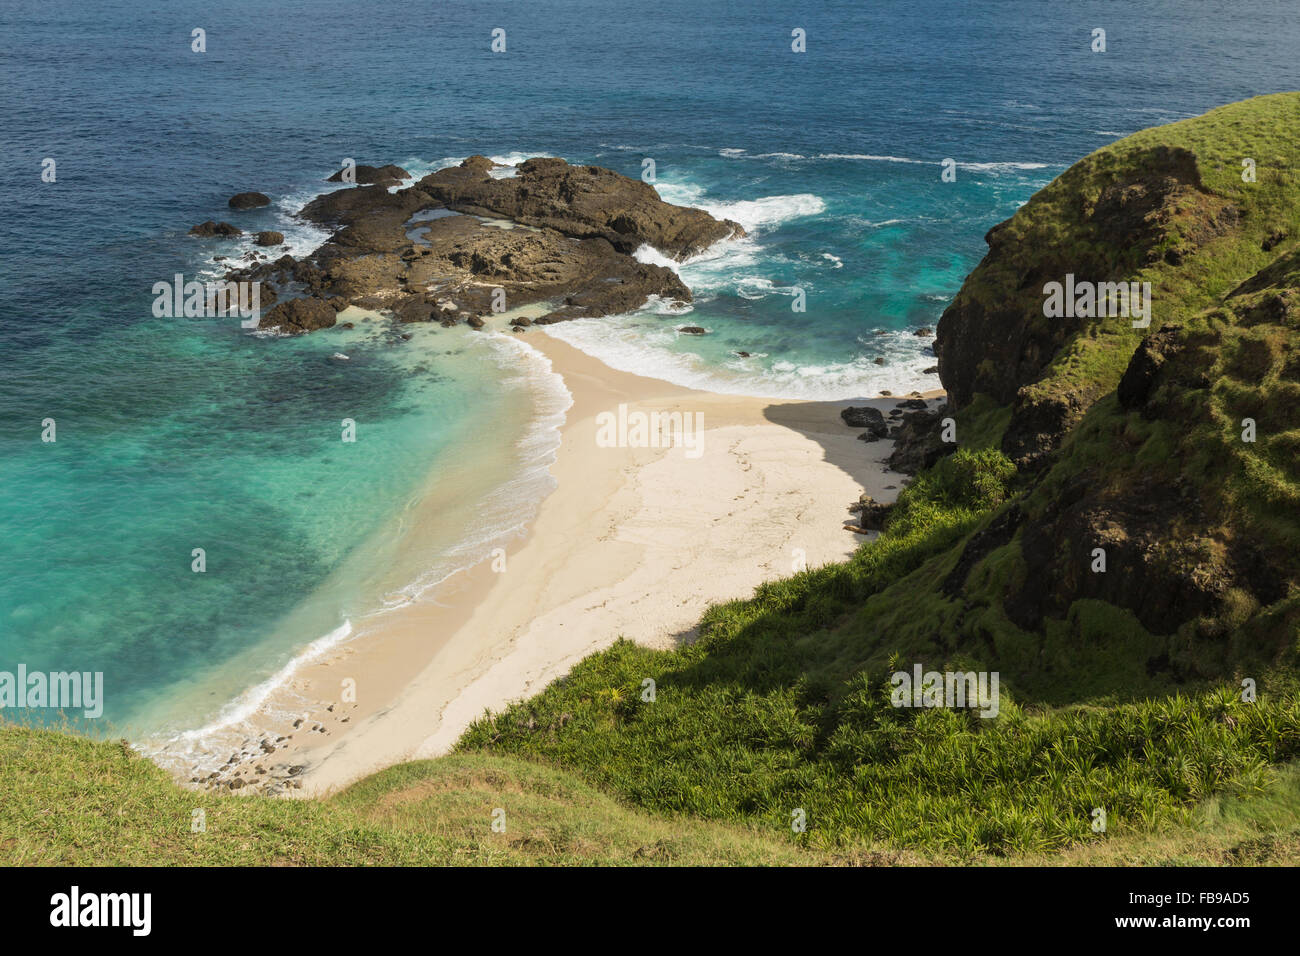 Secluded beach near Tanjung Aan I Lombok I Indonesia - Stock Image